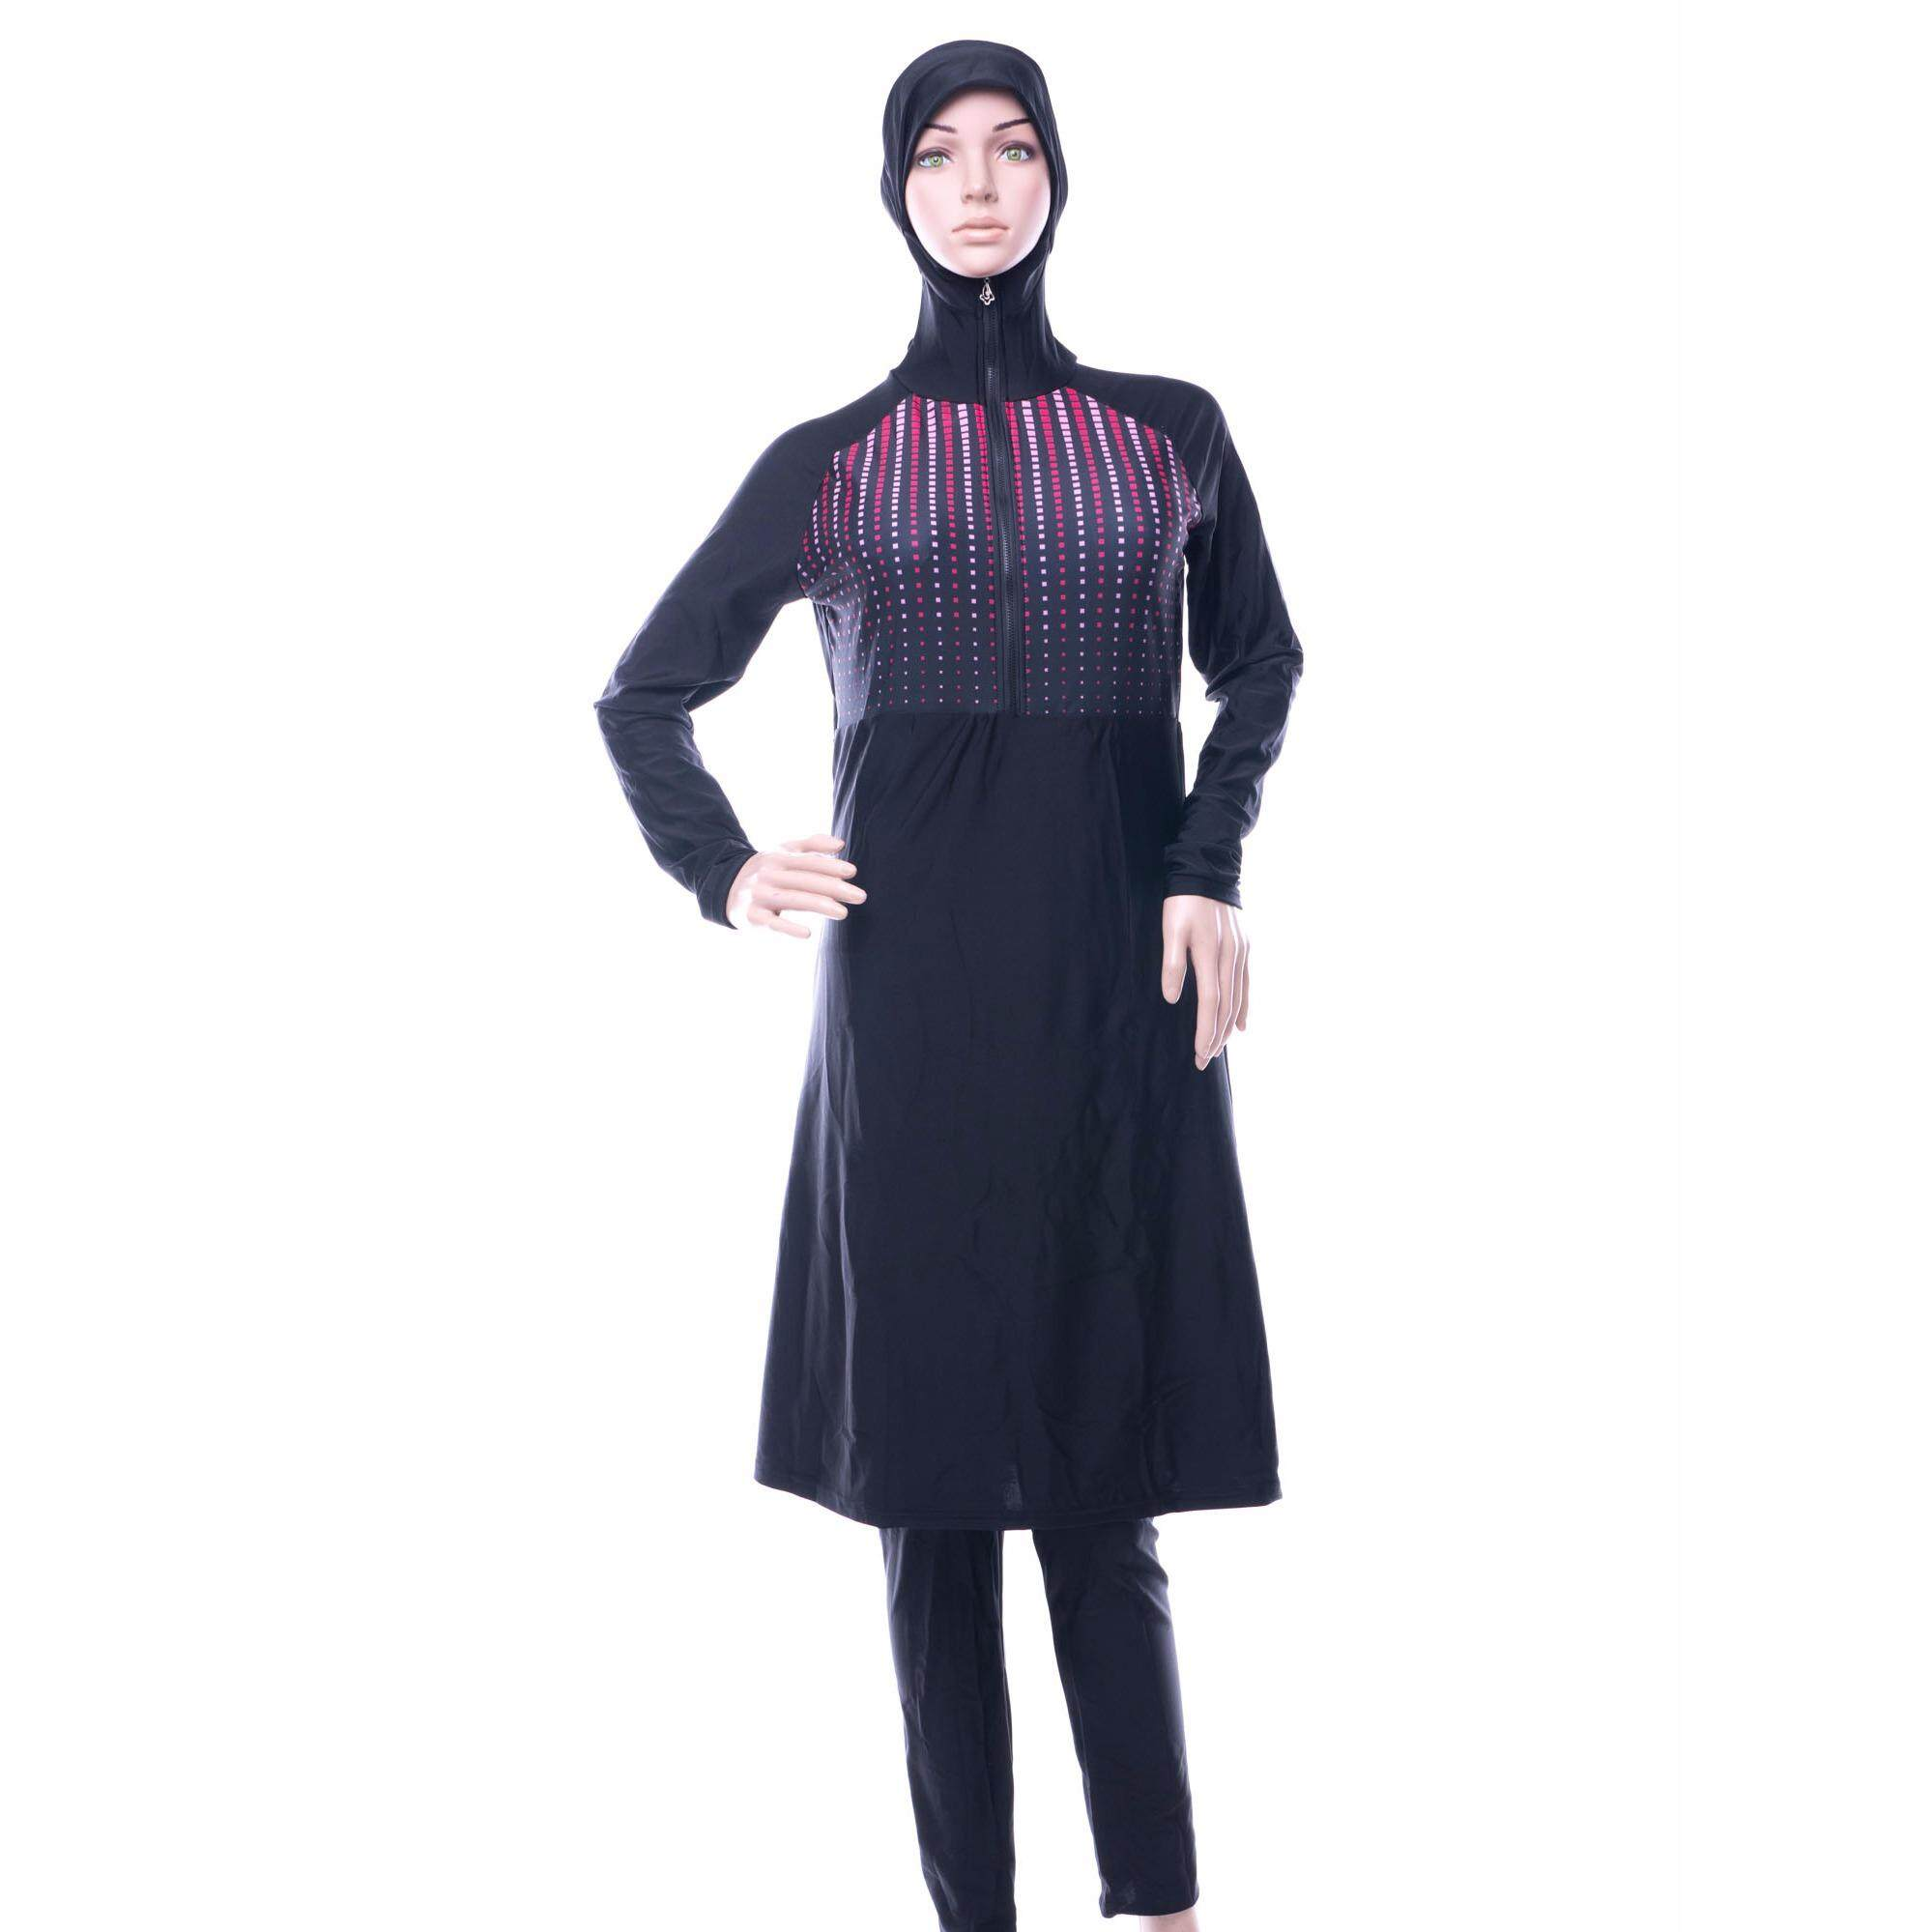 Muslimah Swimsuit With Hijab Swimwear Full Coverage